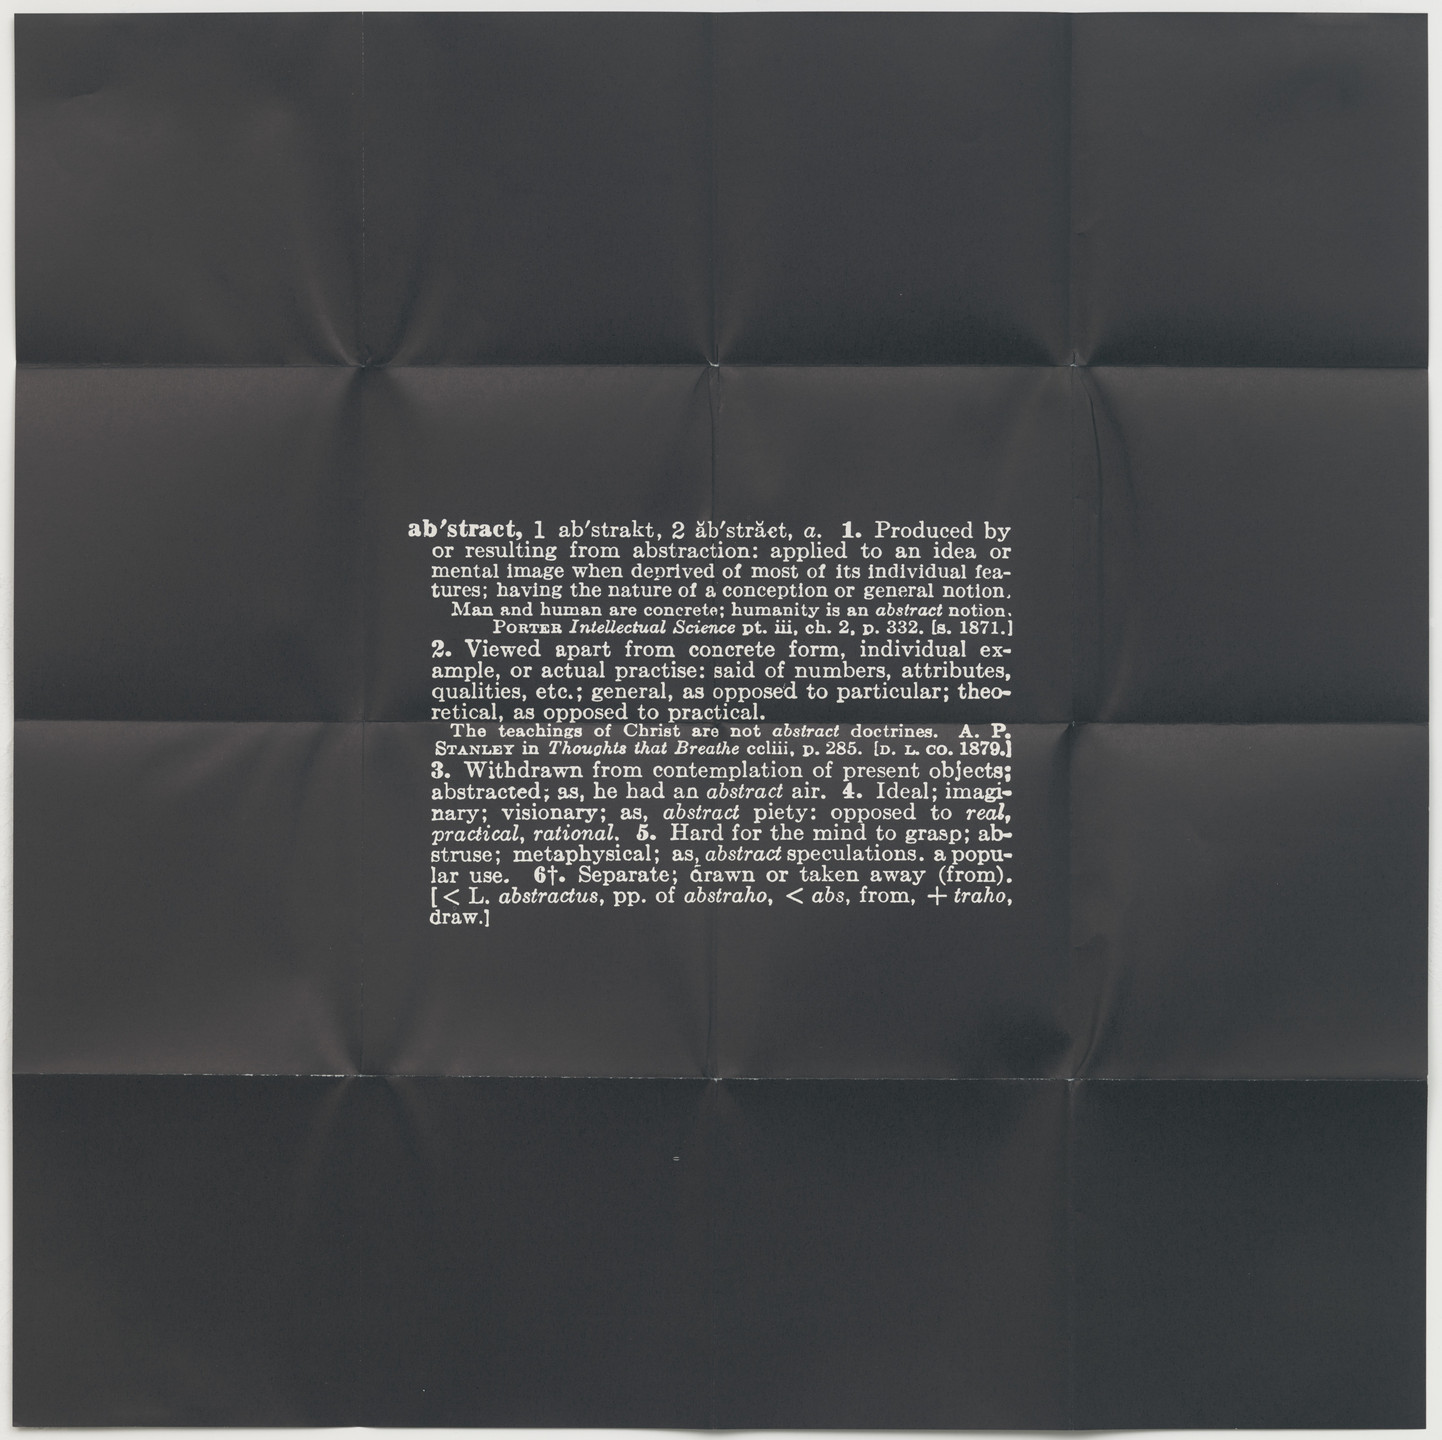 Joseph Kosuth. Four Titled Abstracts from S.M.S. No. 3. 1968